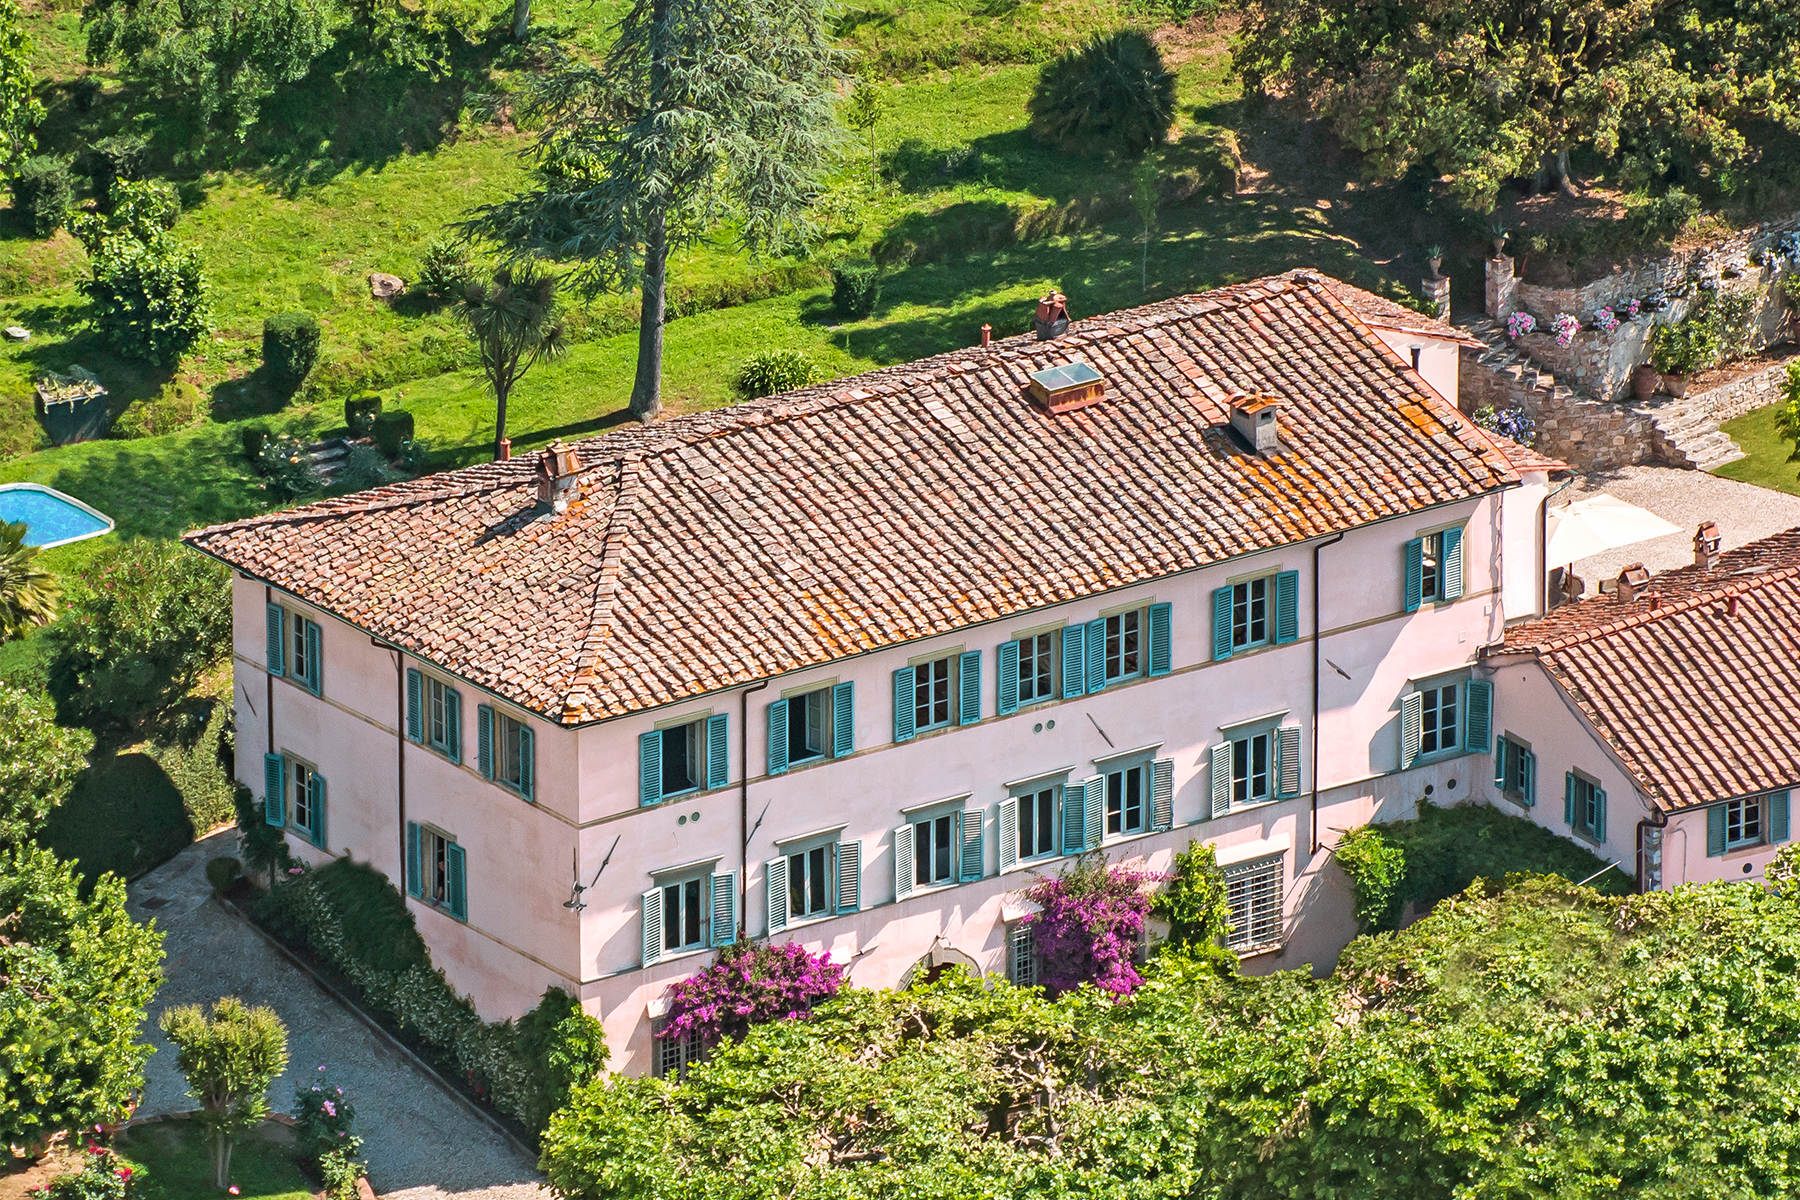 Maison unifamiliale pour l Vente à Traditional two story villa overlooking the valley Lucca, Lucca Italie